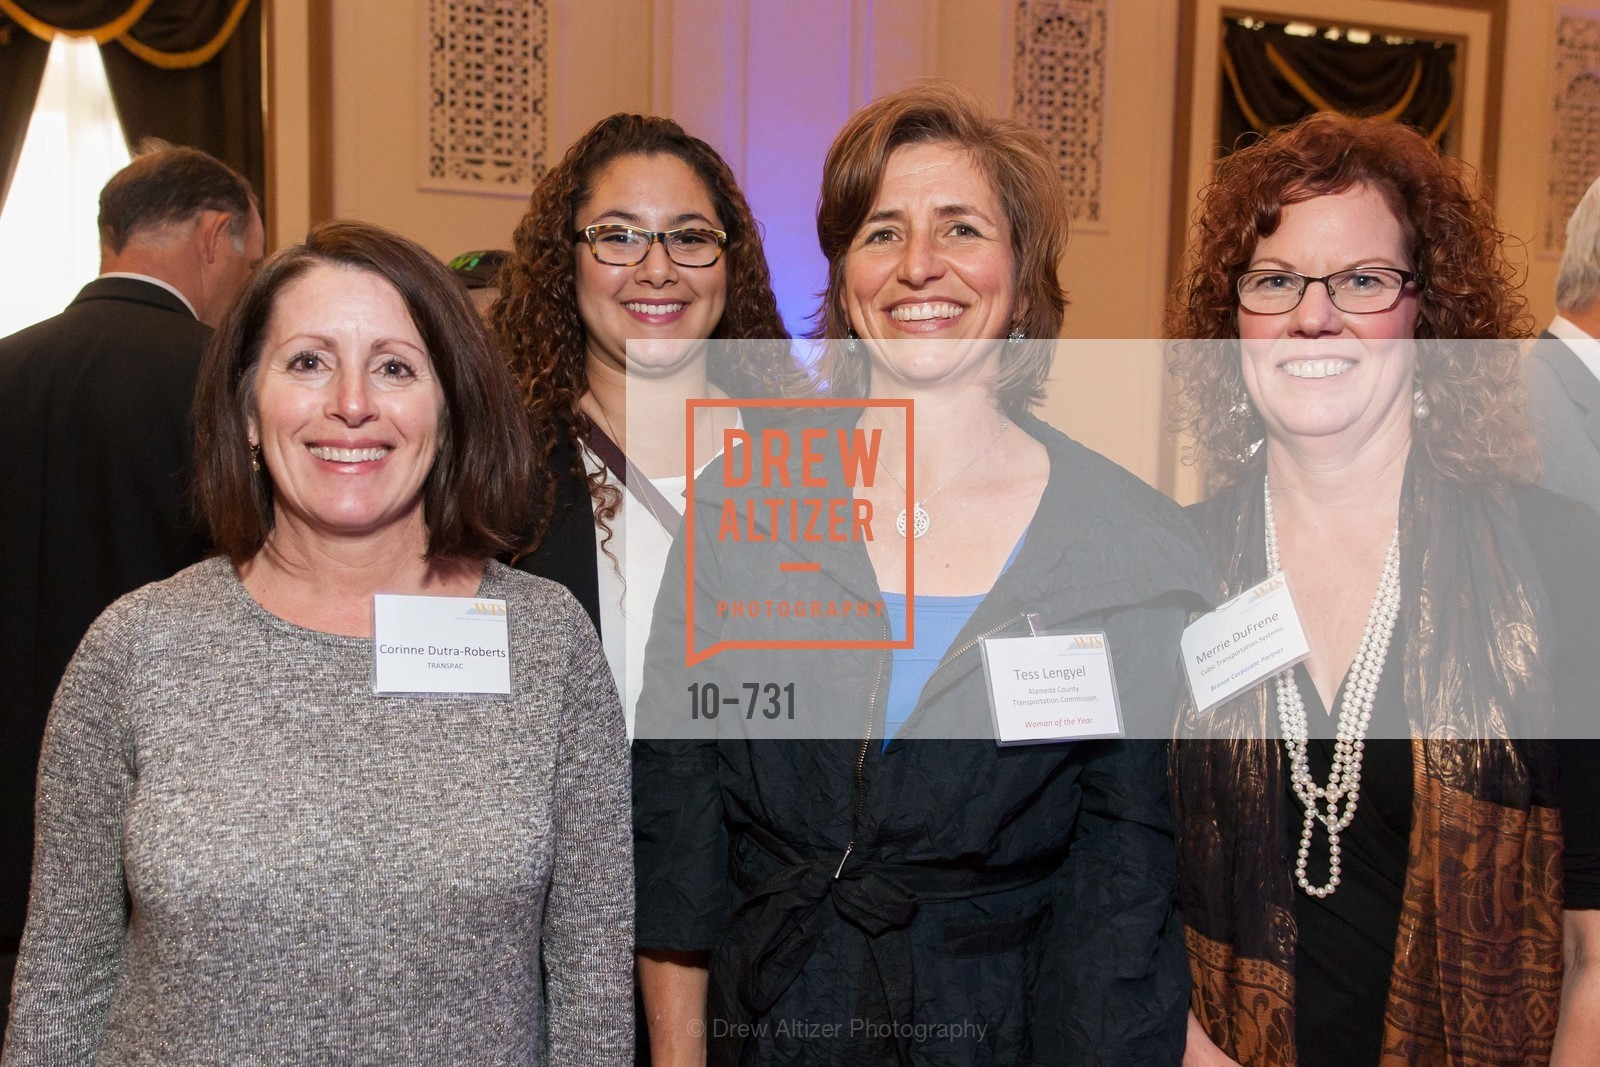 Corinne Dutra-Roberts, Aminta Kouyate, Tess Lengyel, Merrie DUFRENE, WOMEN'S TRANSPORTATION SEMINAR SF Bay Area Chapter Annual Scholarship Awards, US, May 14th, 2015,Drew Altizer, Drew Altizer Photography, full-service agency, private events, San Francisco photographer, photographer california